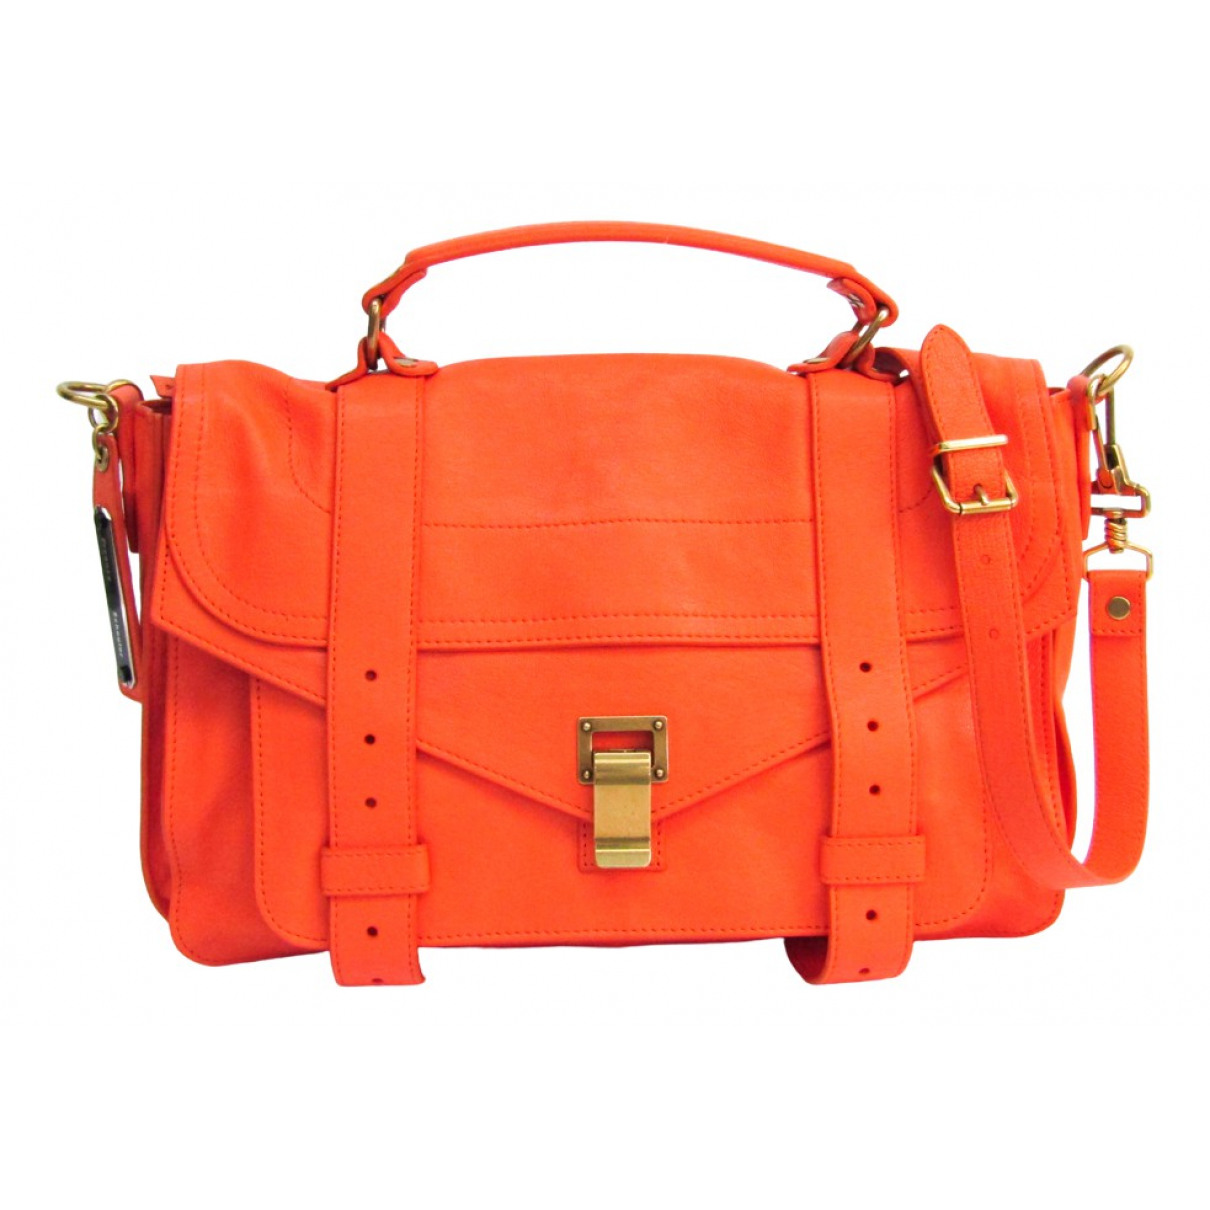 Proenza Schouler PS1 Handtasche in  Orange Leder